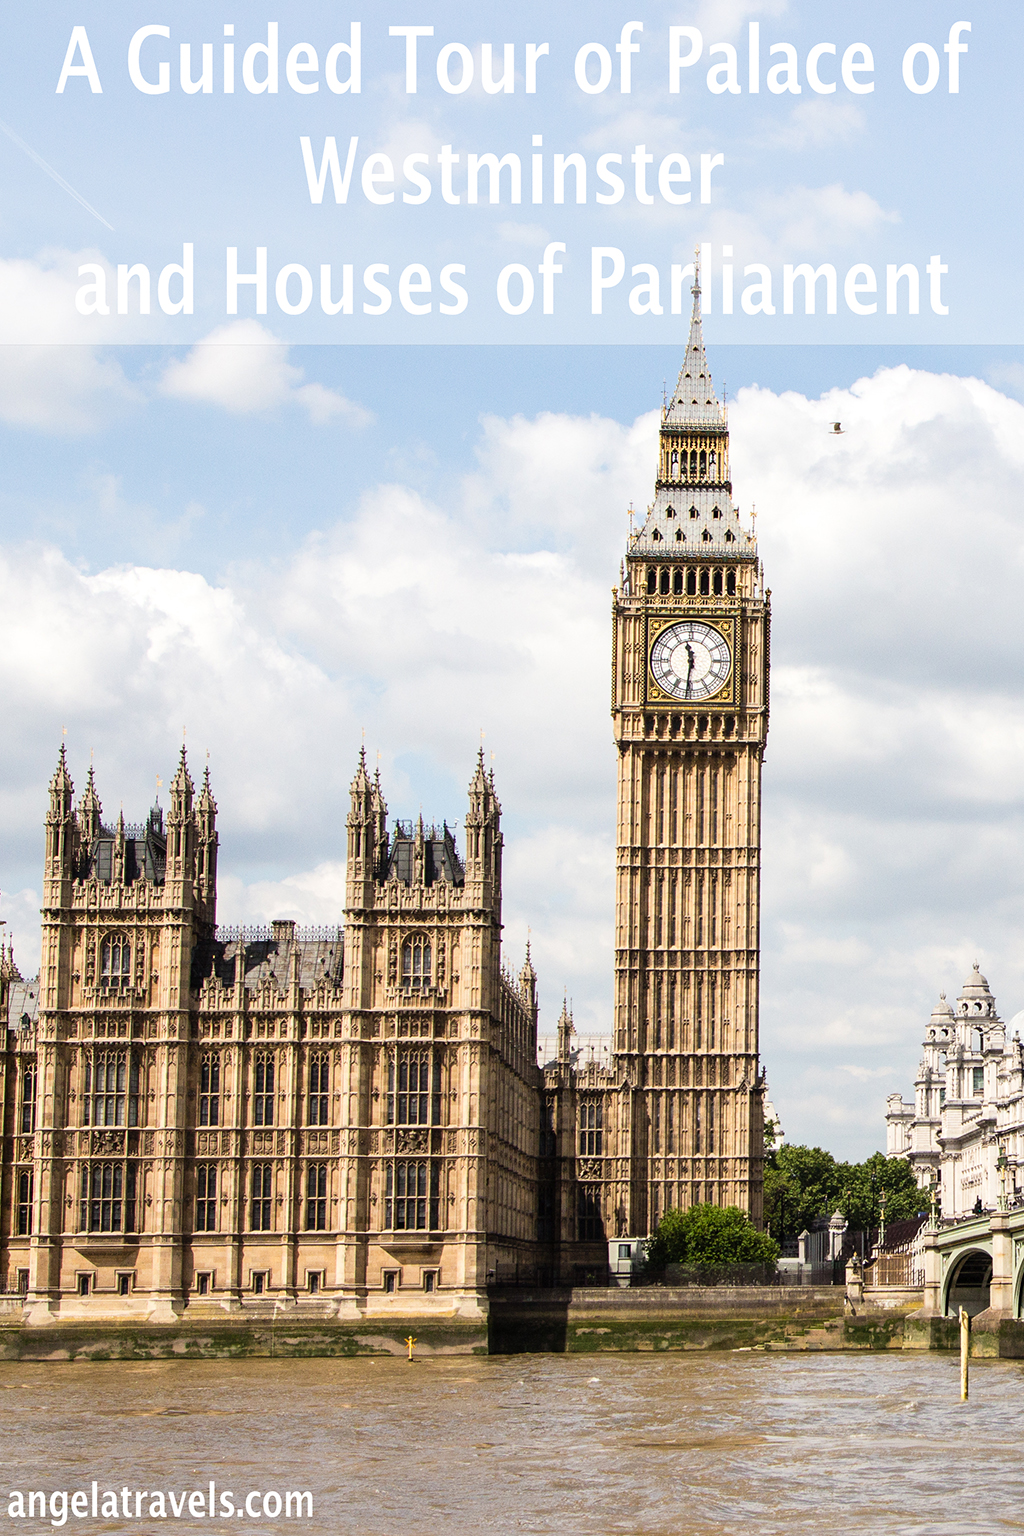 A Guided Tour of Palace of Westminster and Houses of Parliament